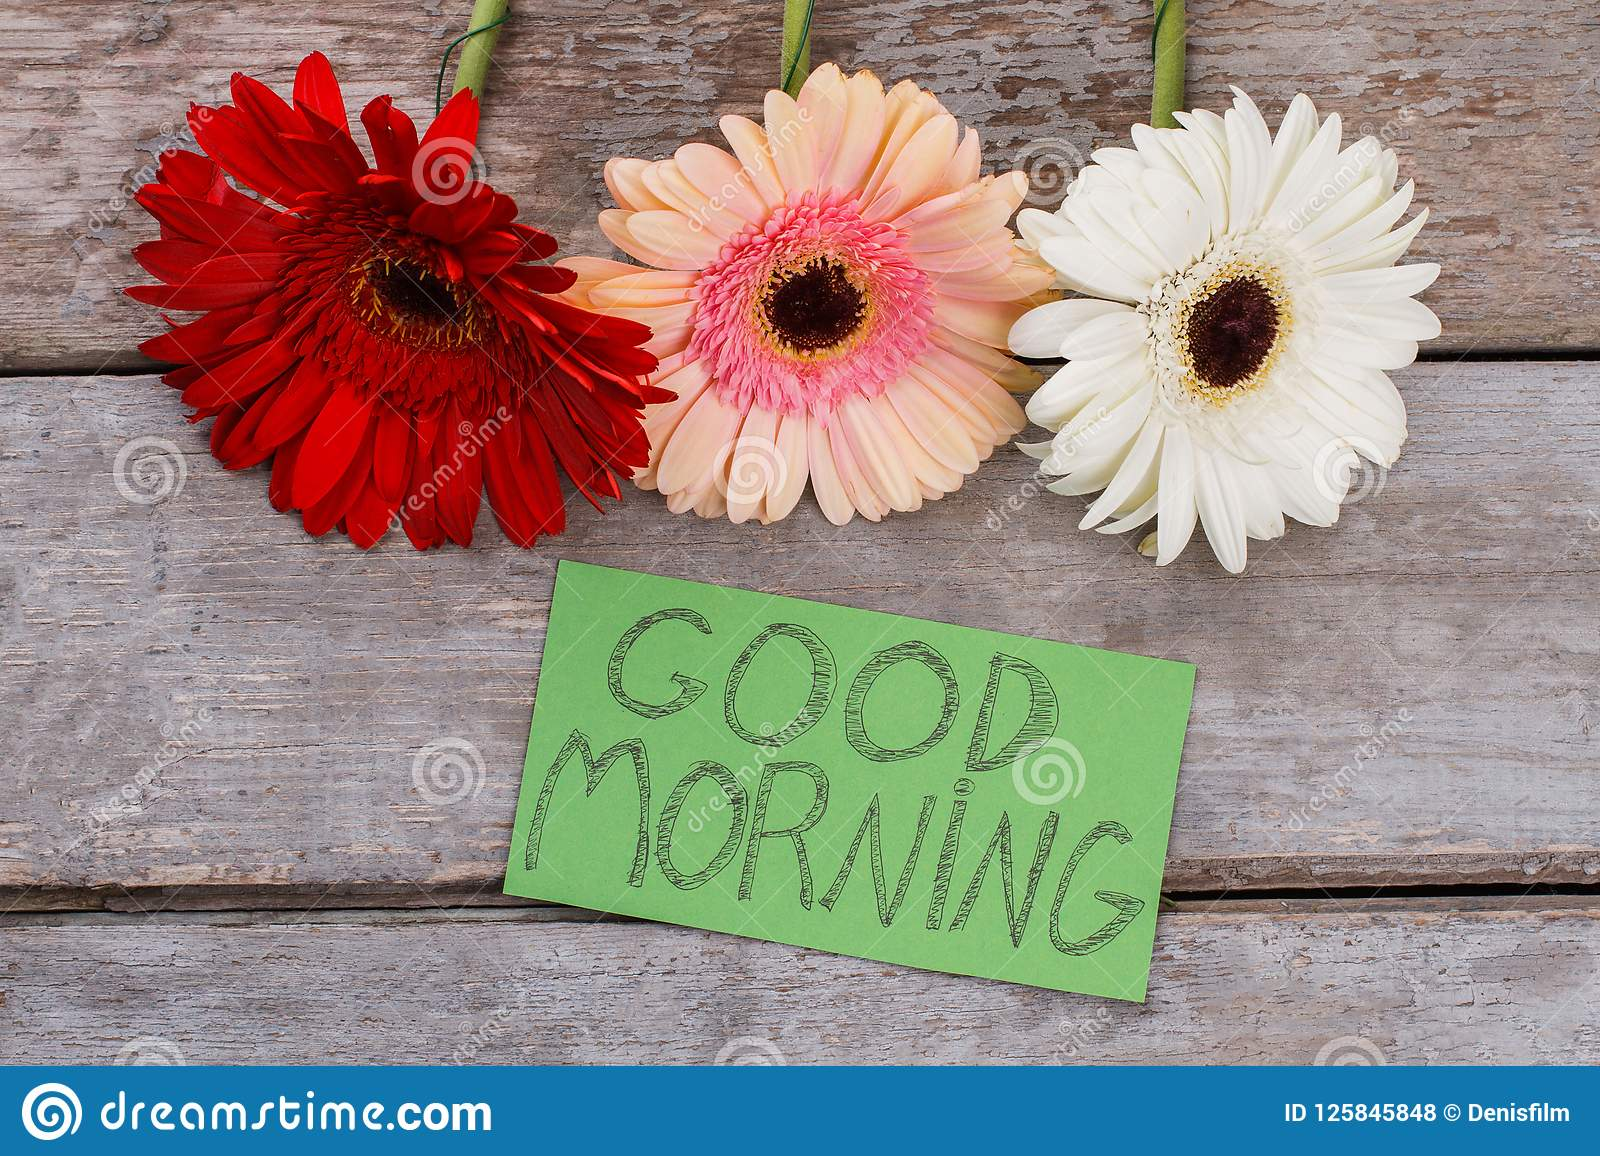 Good Morning Wish And Gerbera Daisy Flowers Heads Stock Photo